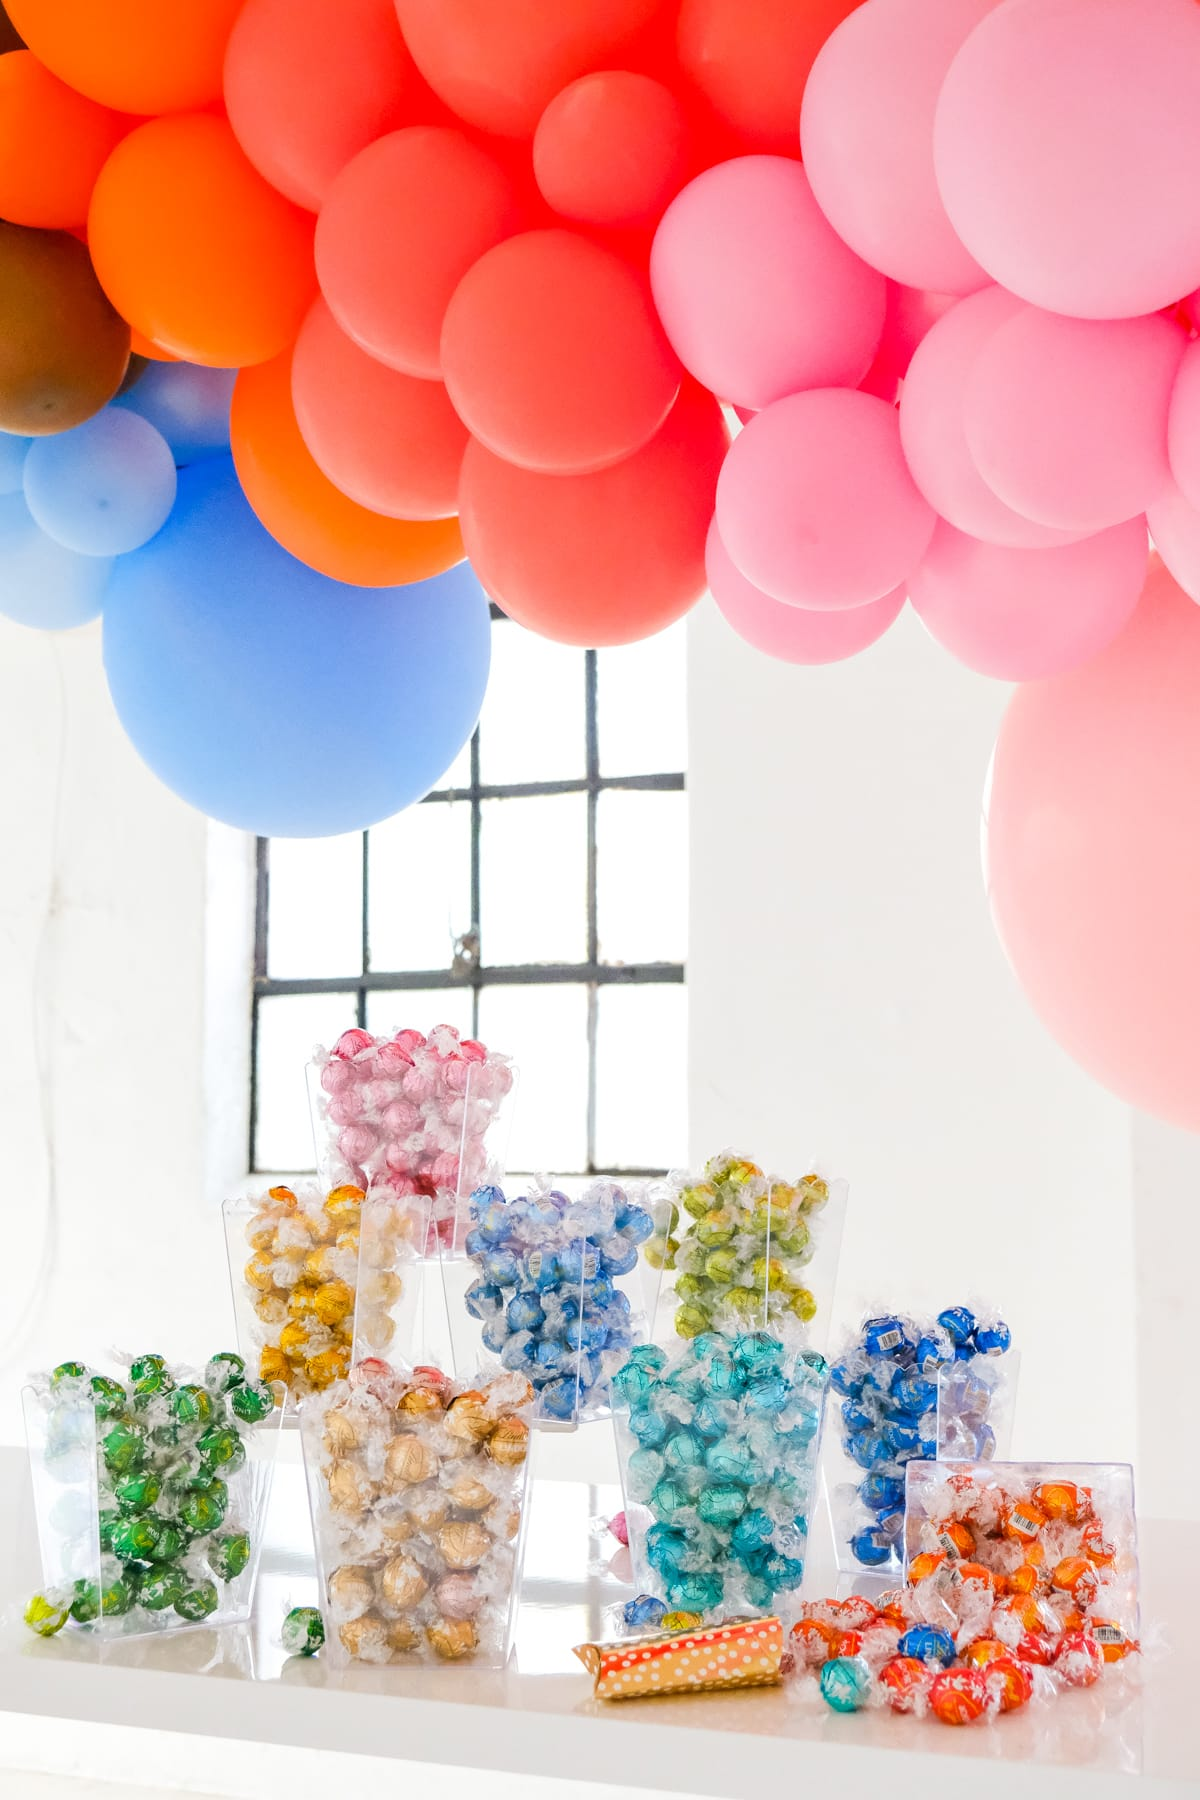 5 DIY Gender Neutral Baby Shower Ideas by top Houston lifestyle blogger Ashley Rose of Sugar & Cloth